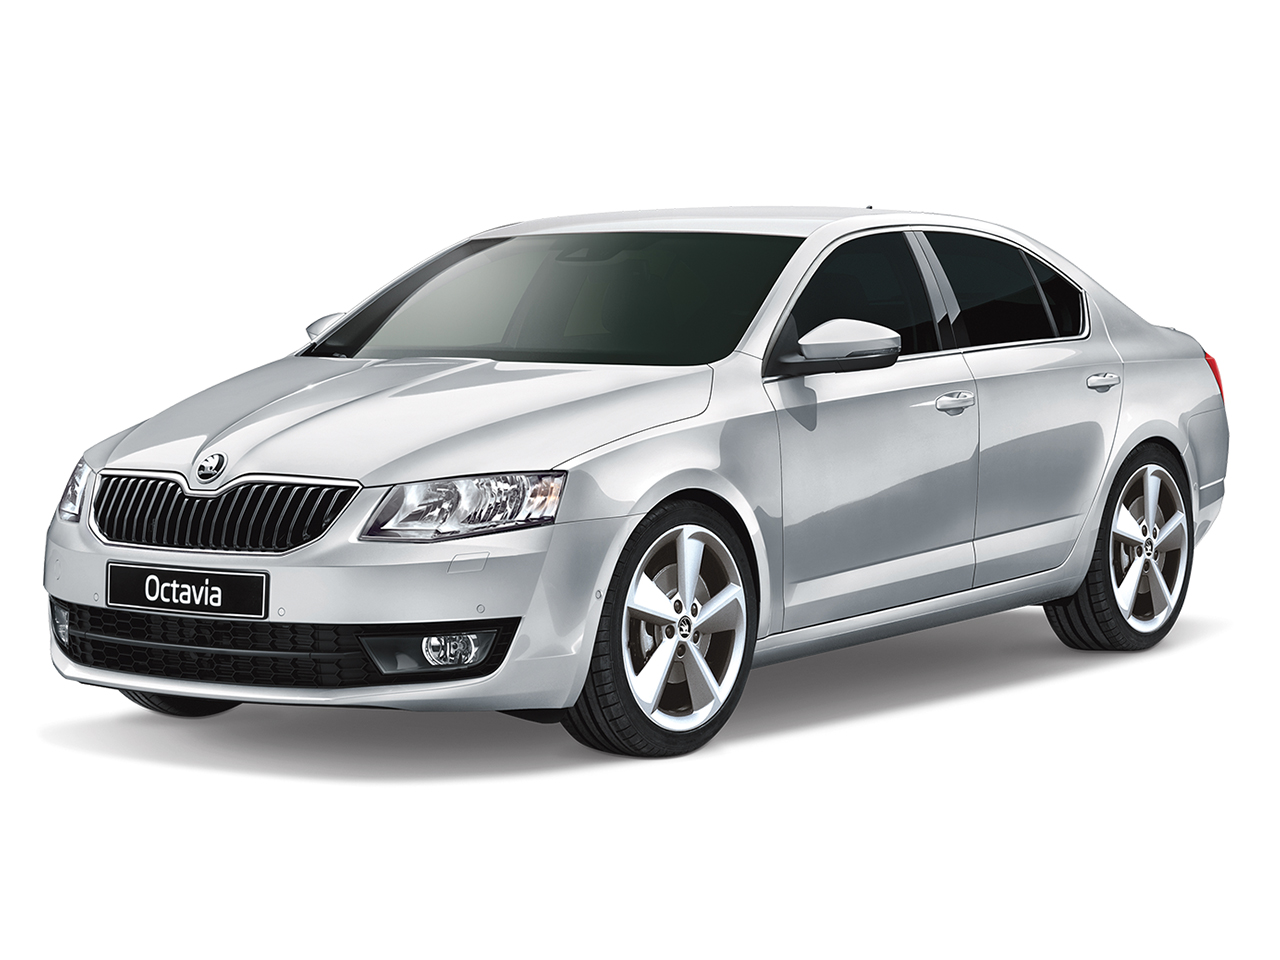 2018 Skoda Octavia Prices In Uae Gulf Specs Amp Reviews For Dubai Abu Dhabi And Sharjah Yallamotor